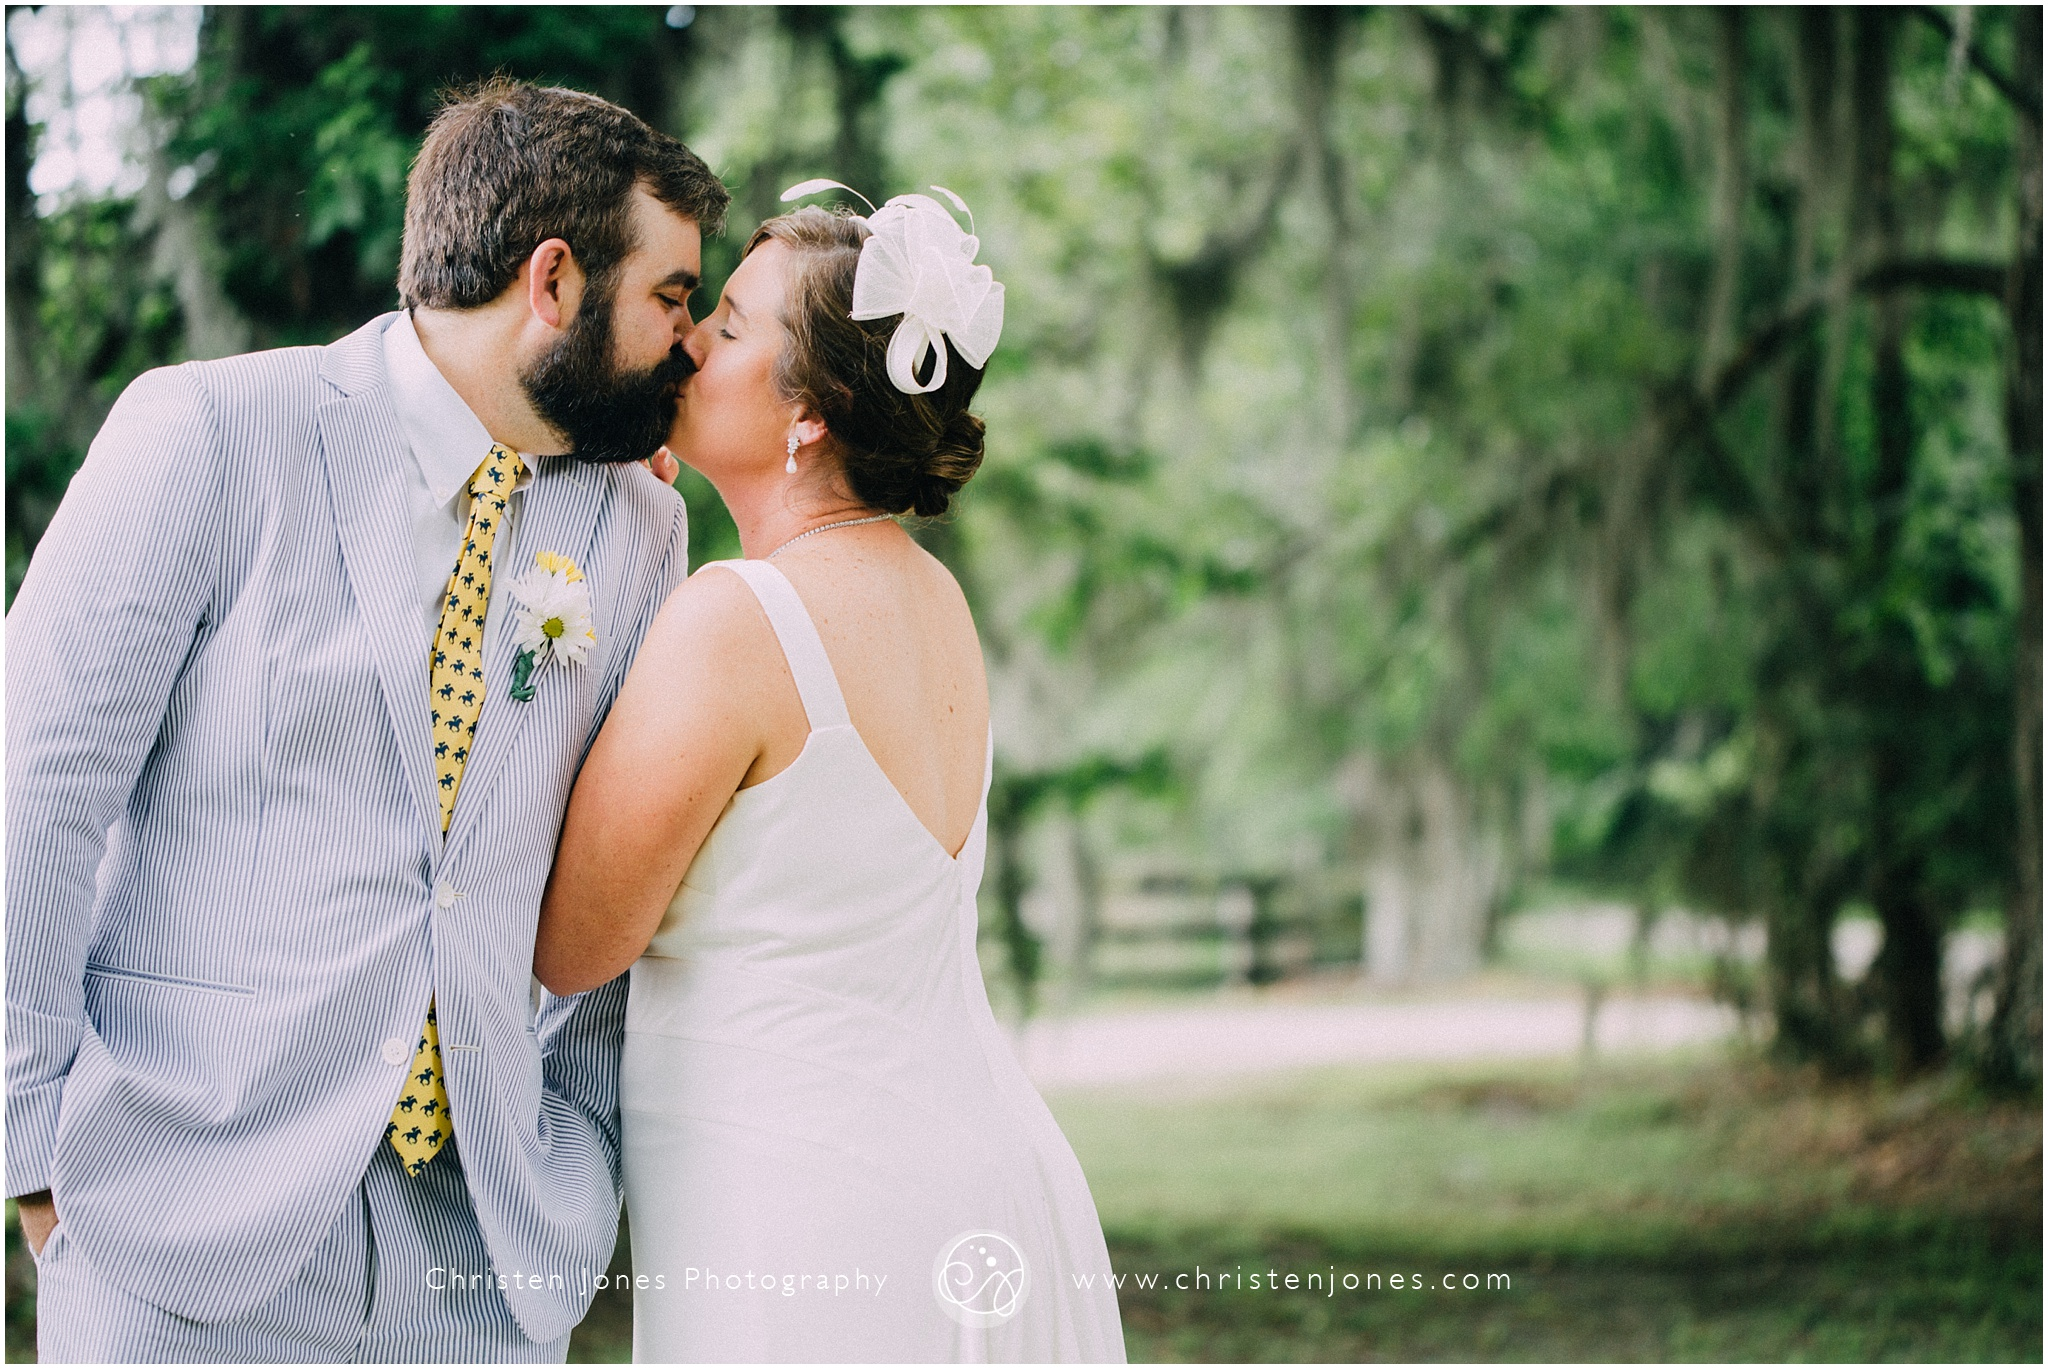 Alabama wedding, Alabama wedding photographer, wedding, destination wedding photographer, preakness wedding, southern wedding